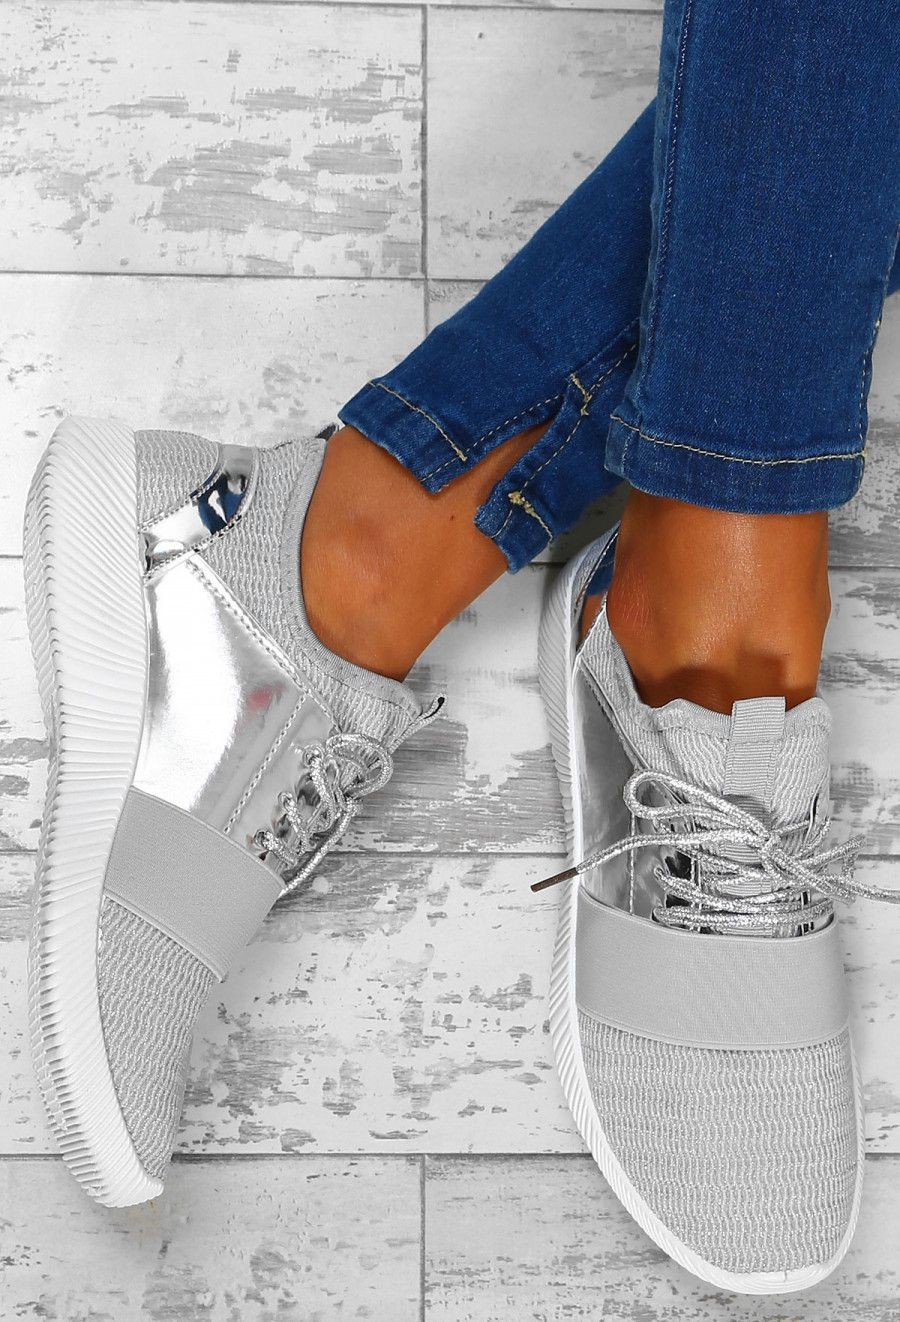 Pin on Shoes ♡